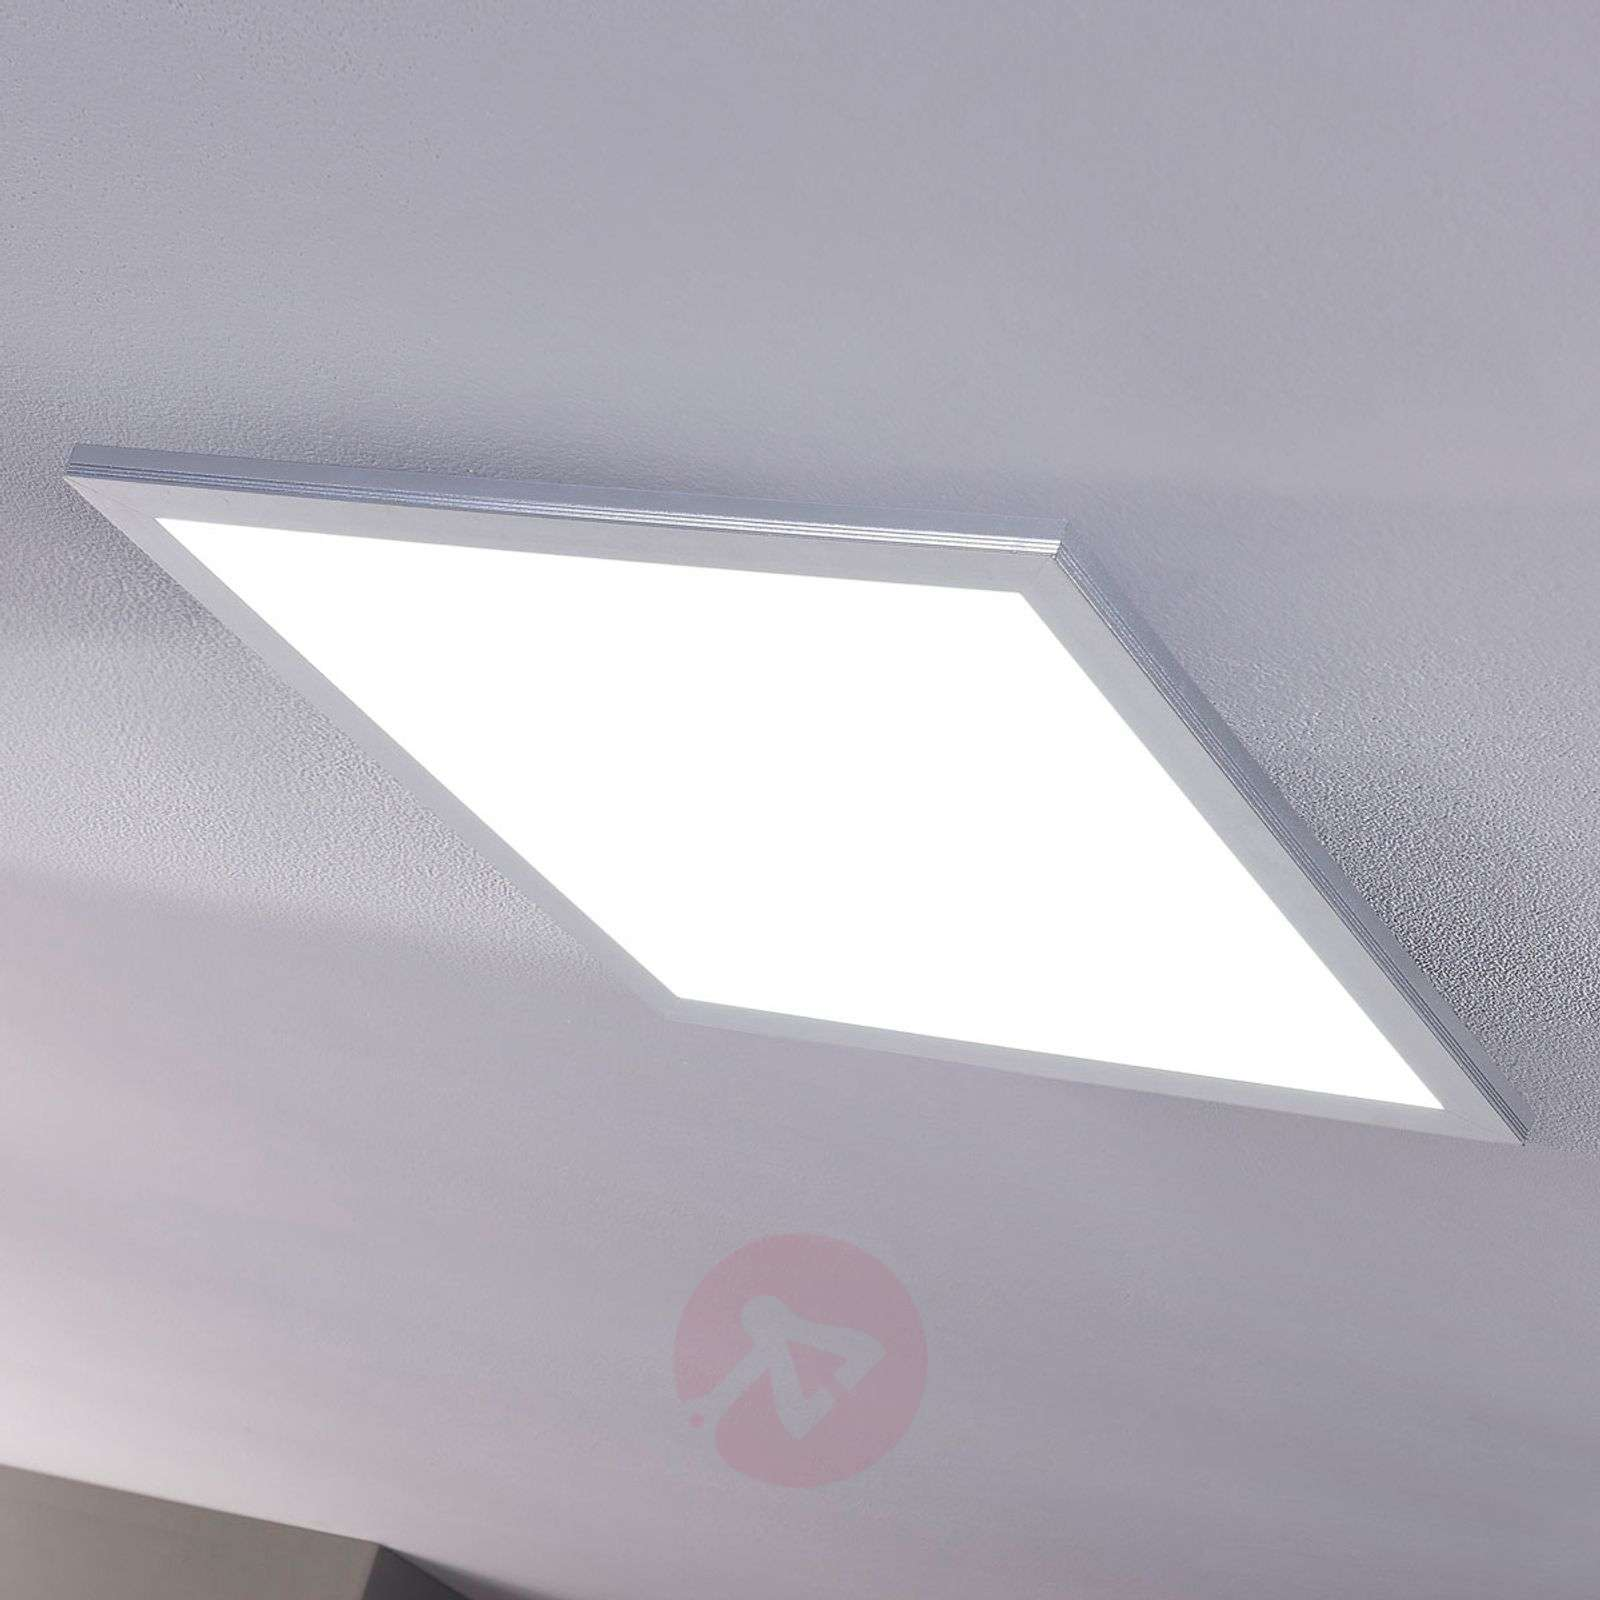 Panel LED Liv, color variable de luz y atenuable-9956005-02